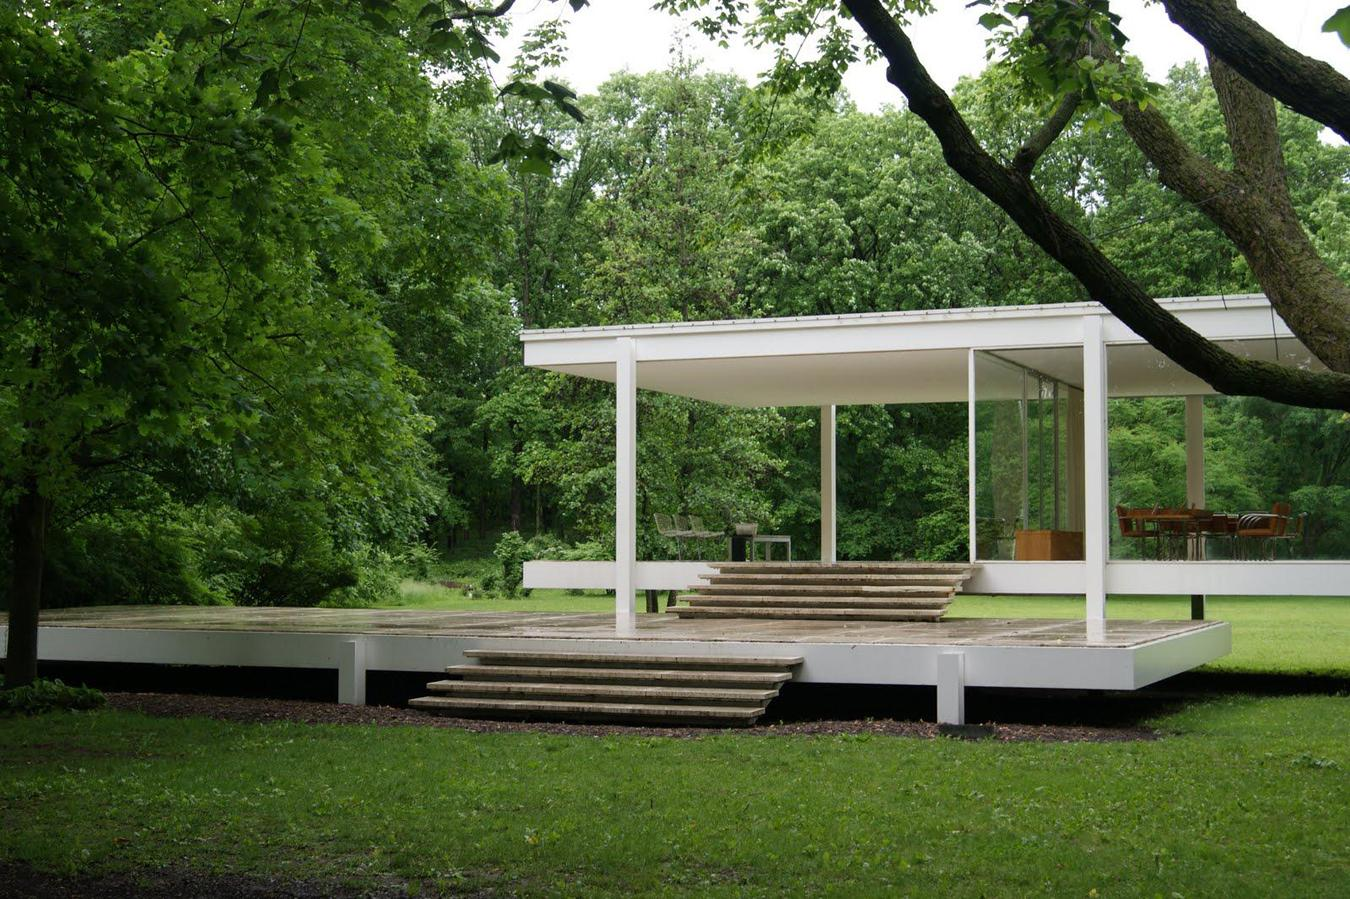 mies van der rohe The european union prize for contemporary architecture – mies van der rohe award is granted every two years to acknowledge and reward quality architectural production in europe.